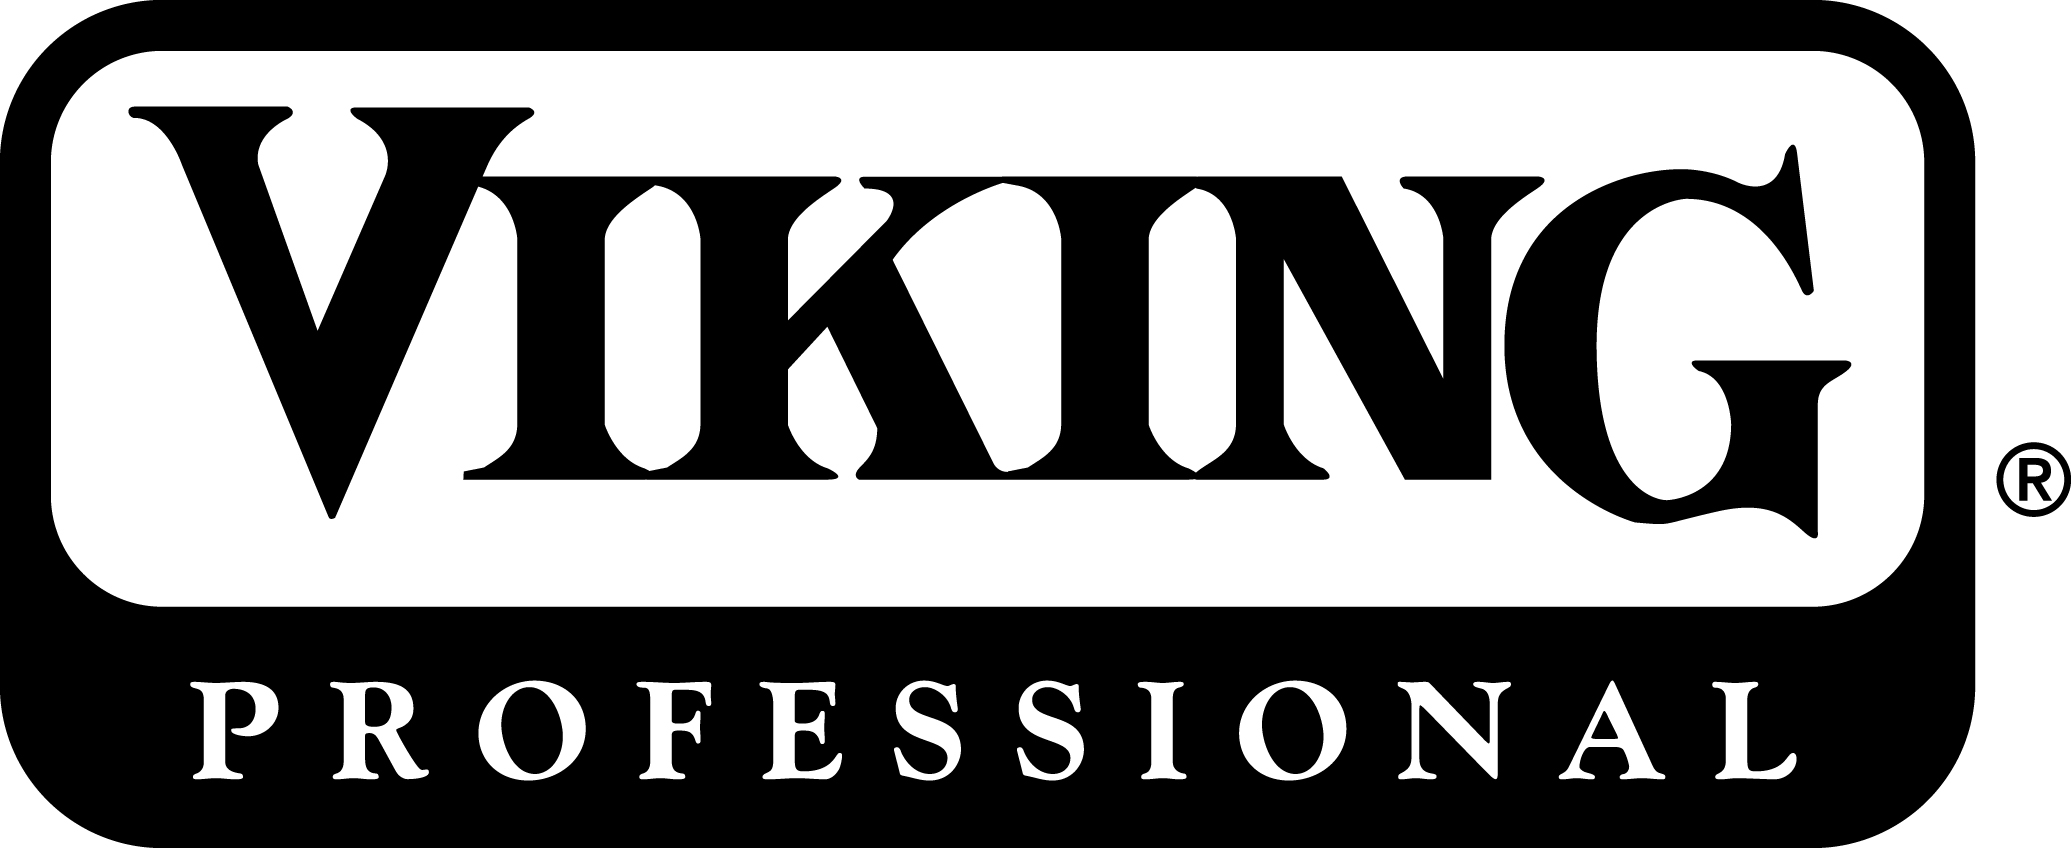 Viking Dishwasher Technician, Kenmore Dishwasher Repair